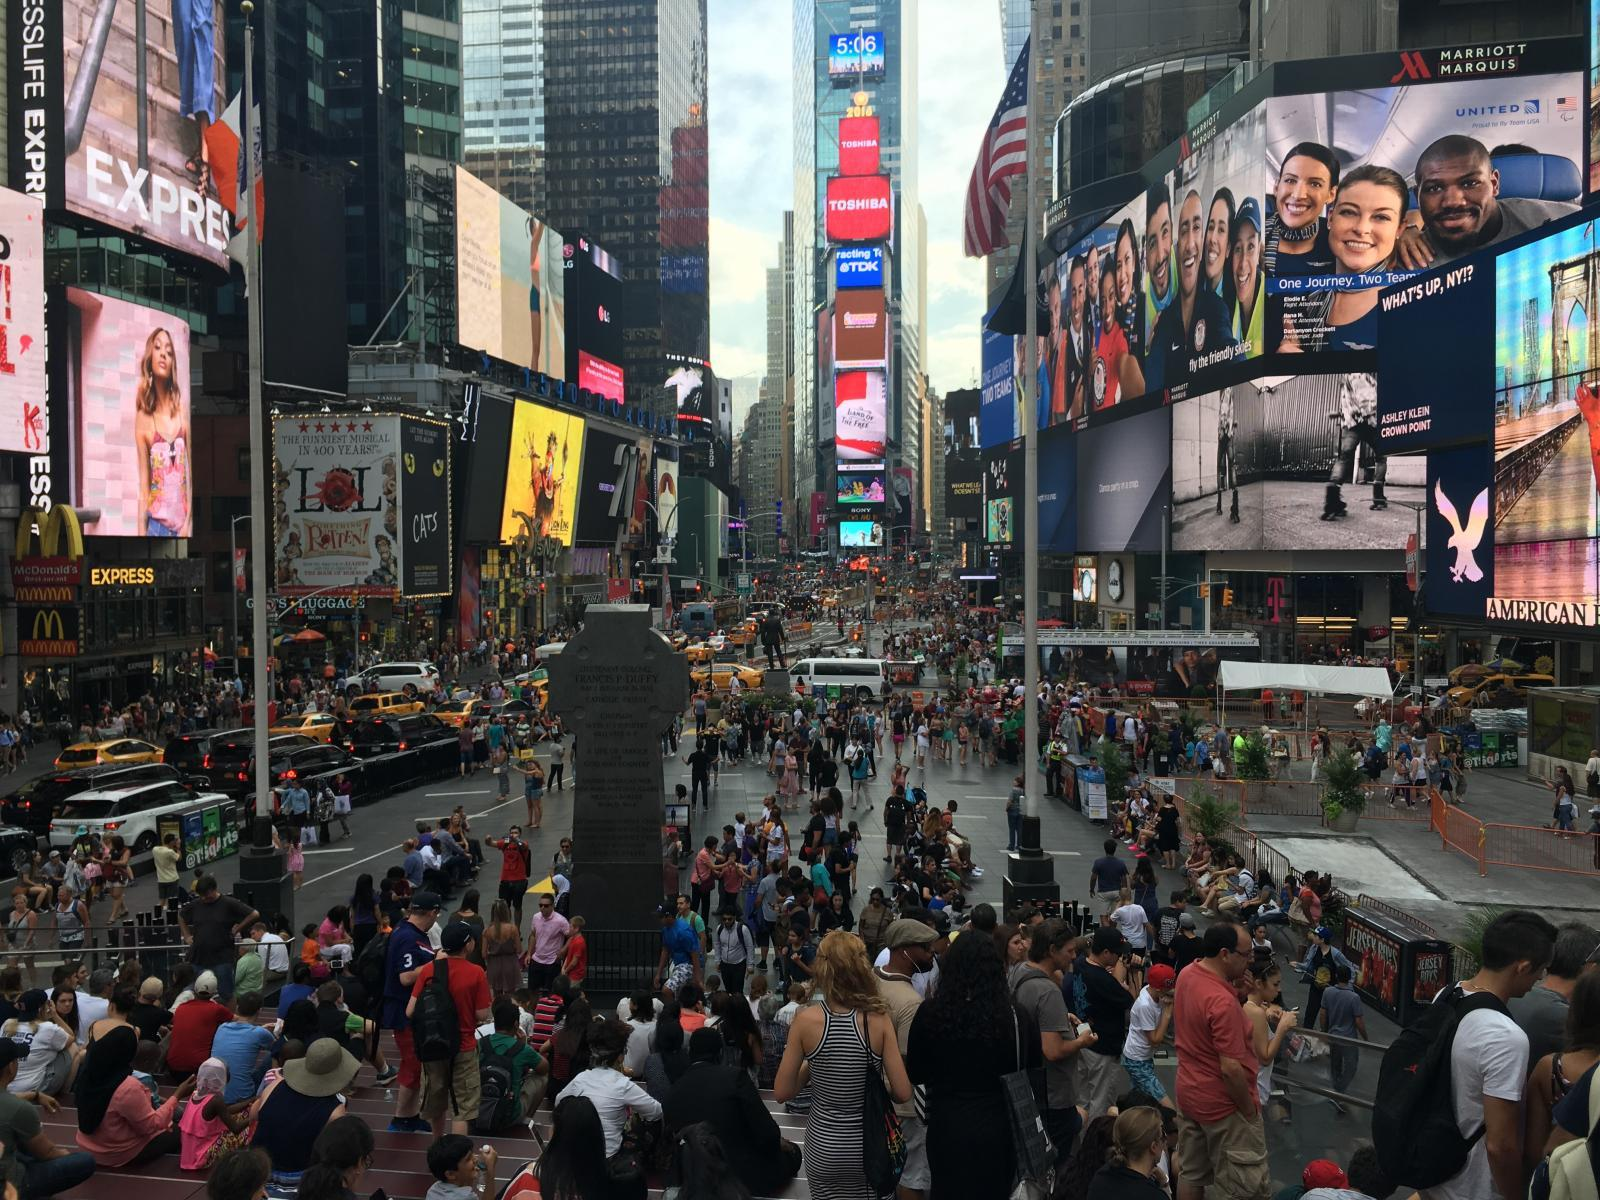 New York Weather August 2020 ▷ The Best Time to Visit New York City | Complete Guide by Month